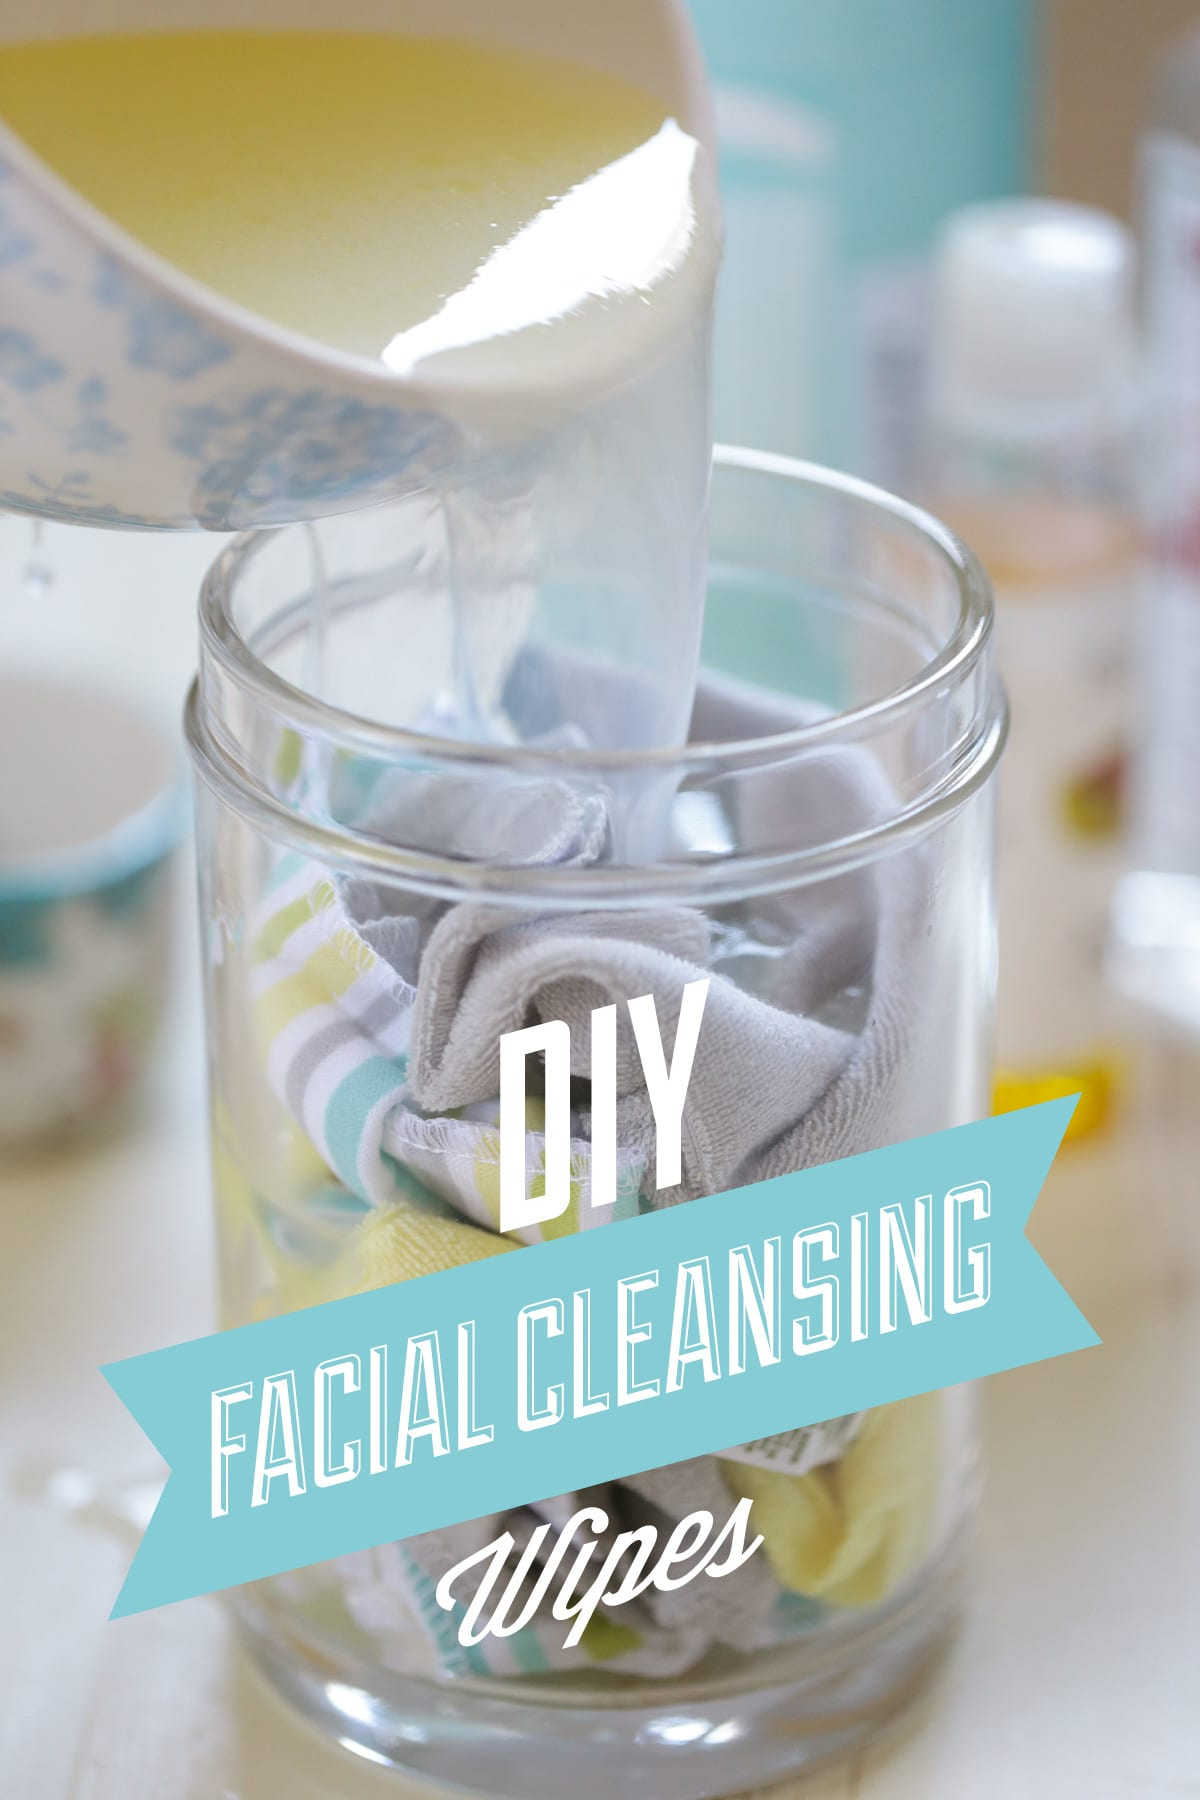 Diy Facial Cleansing Wipes: The Simple Way To Clean Your Face And Remove  Make